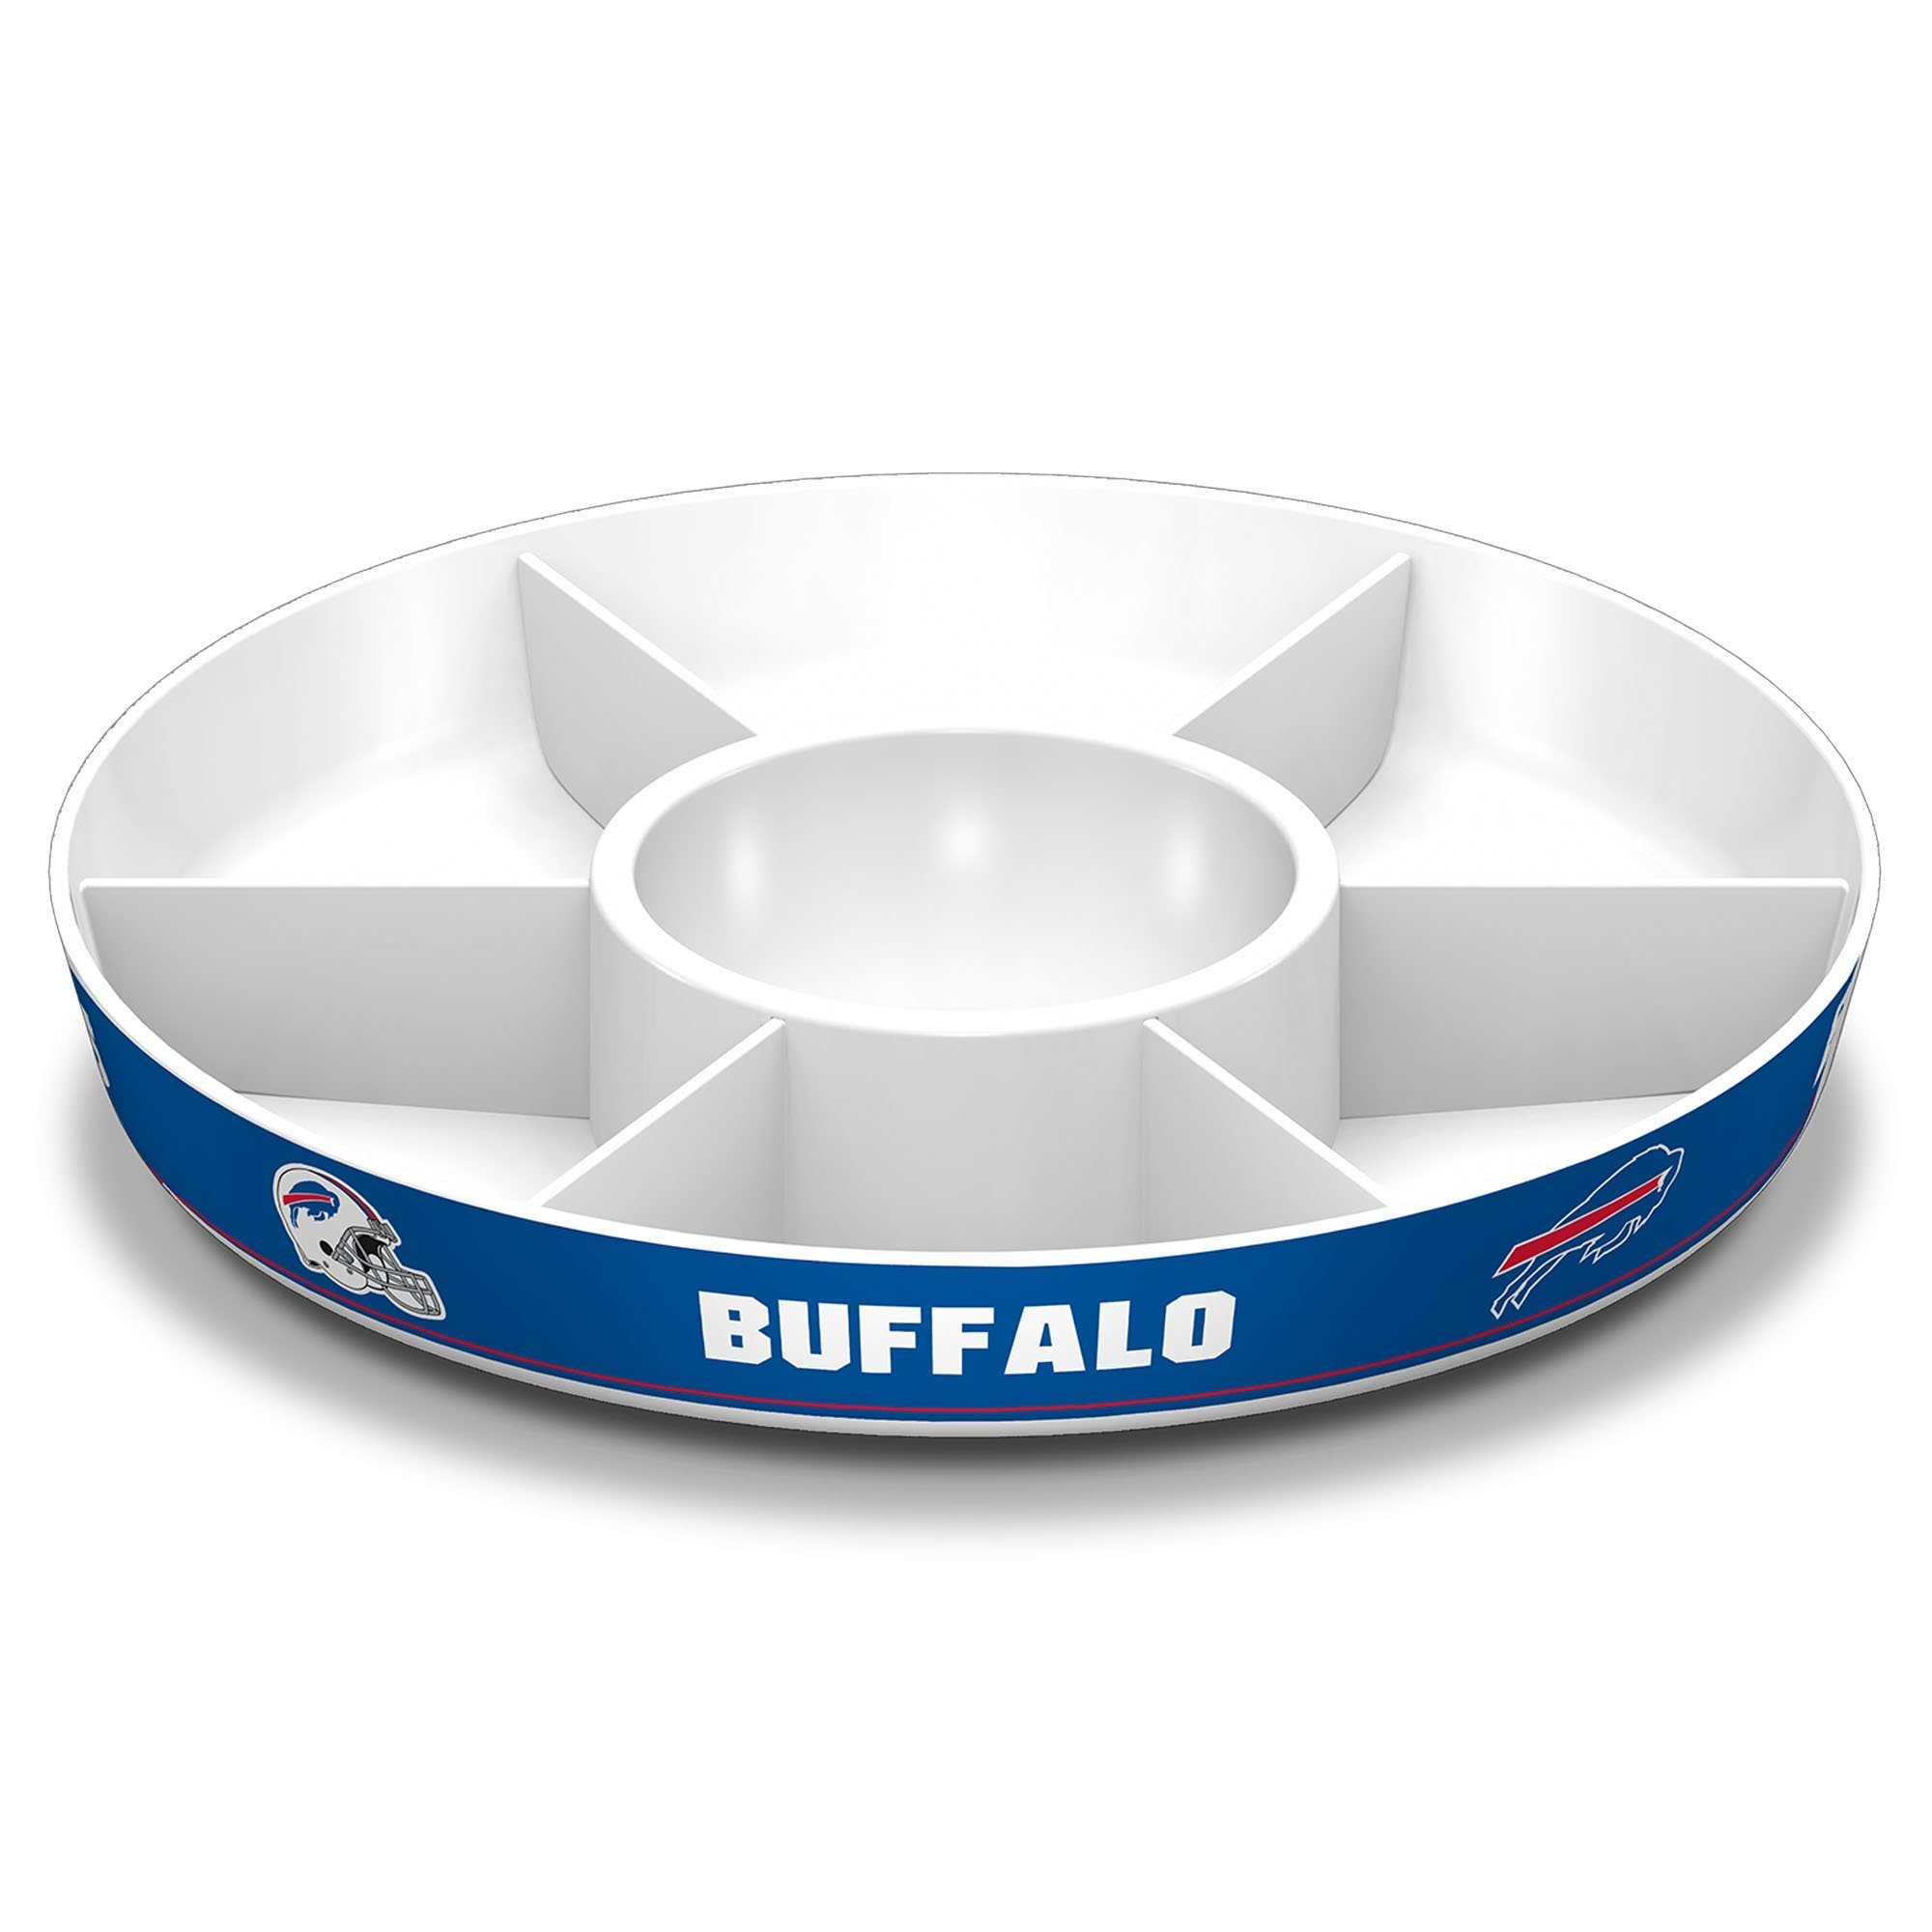 Fremont Die NFL Buffalo Bills Party Platter by Fremont Die (Image #1)